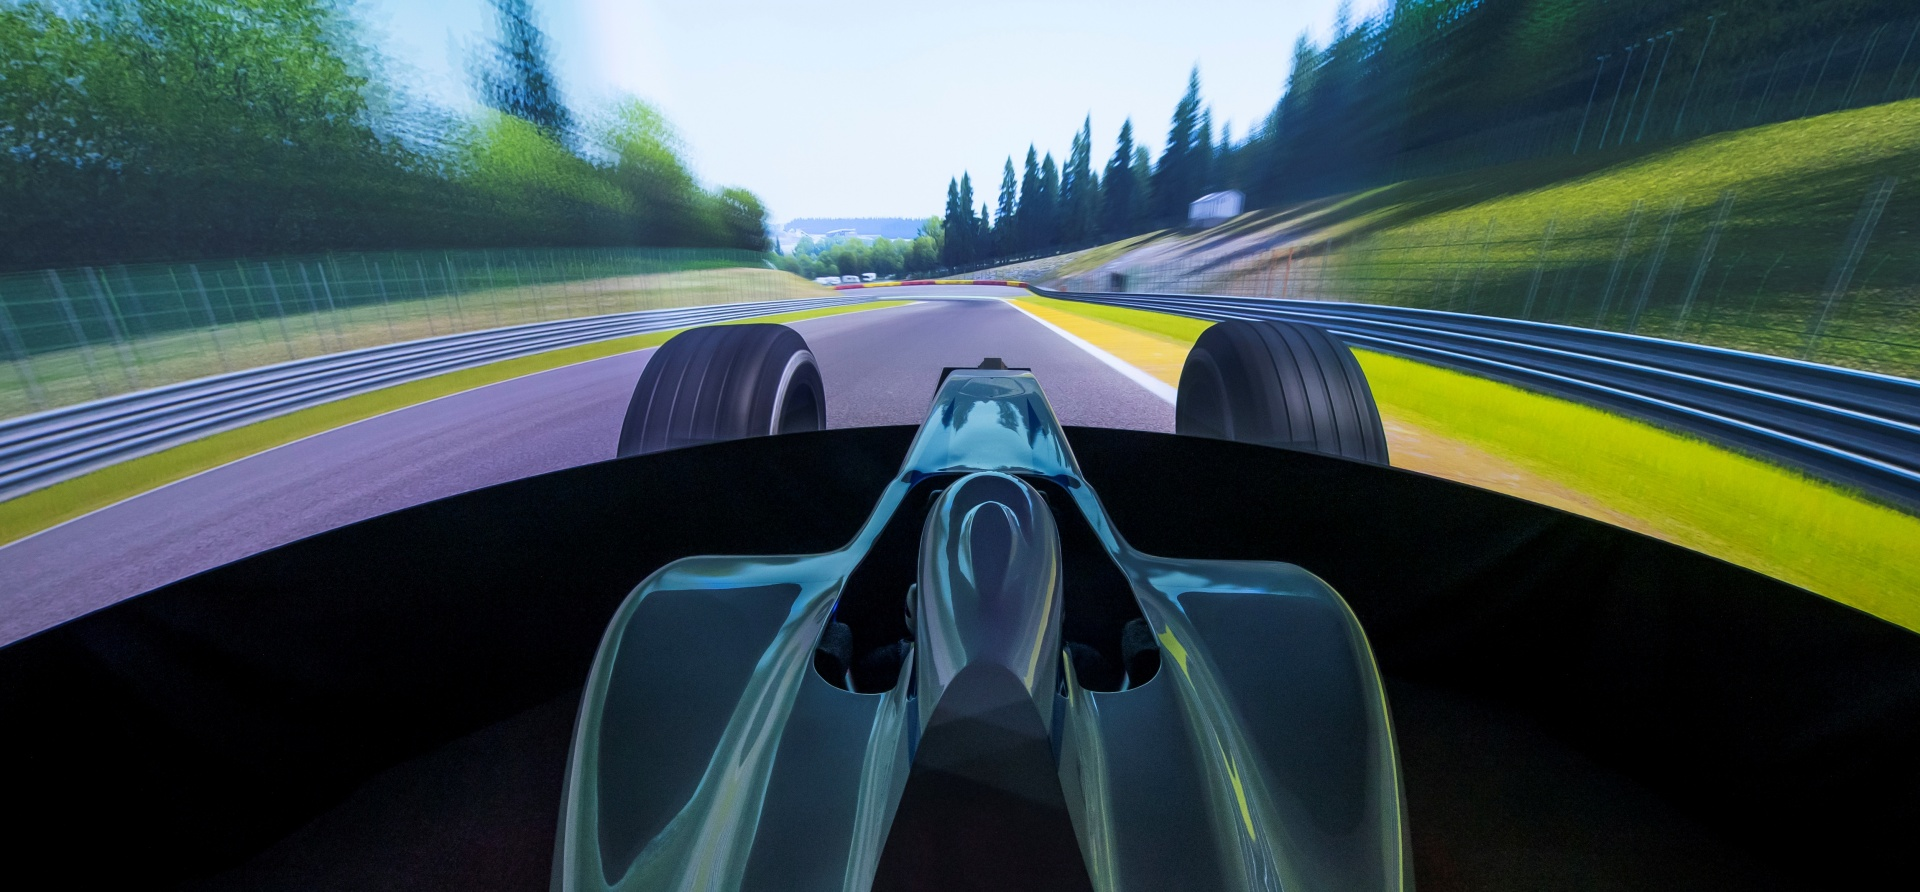 Formula 1 Simulator Experience In Oxfordshire